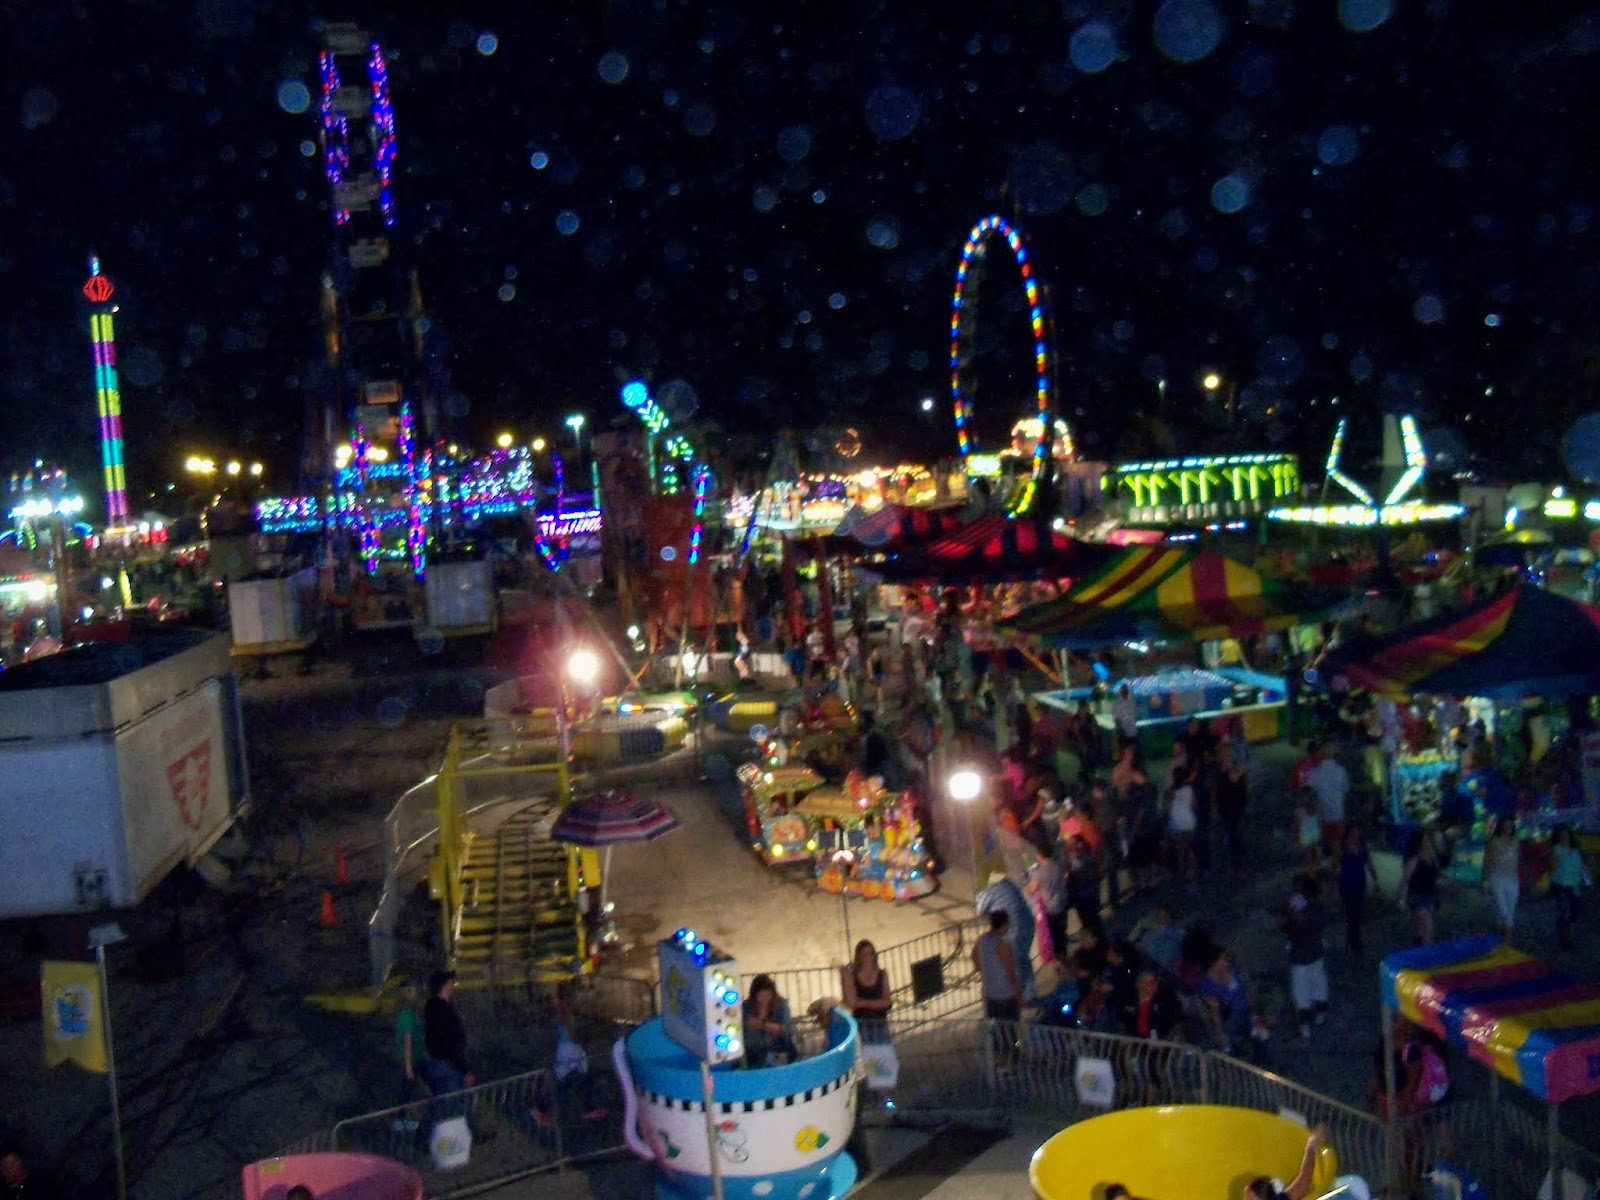 Fort Bend County Fair 2013 - 115_8033.JPG